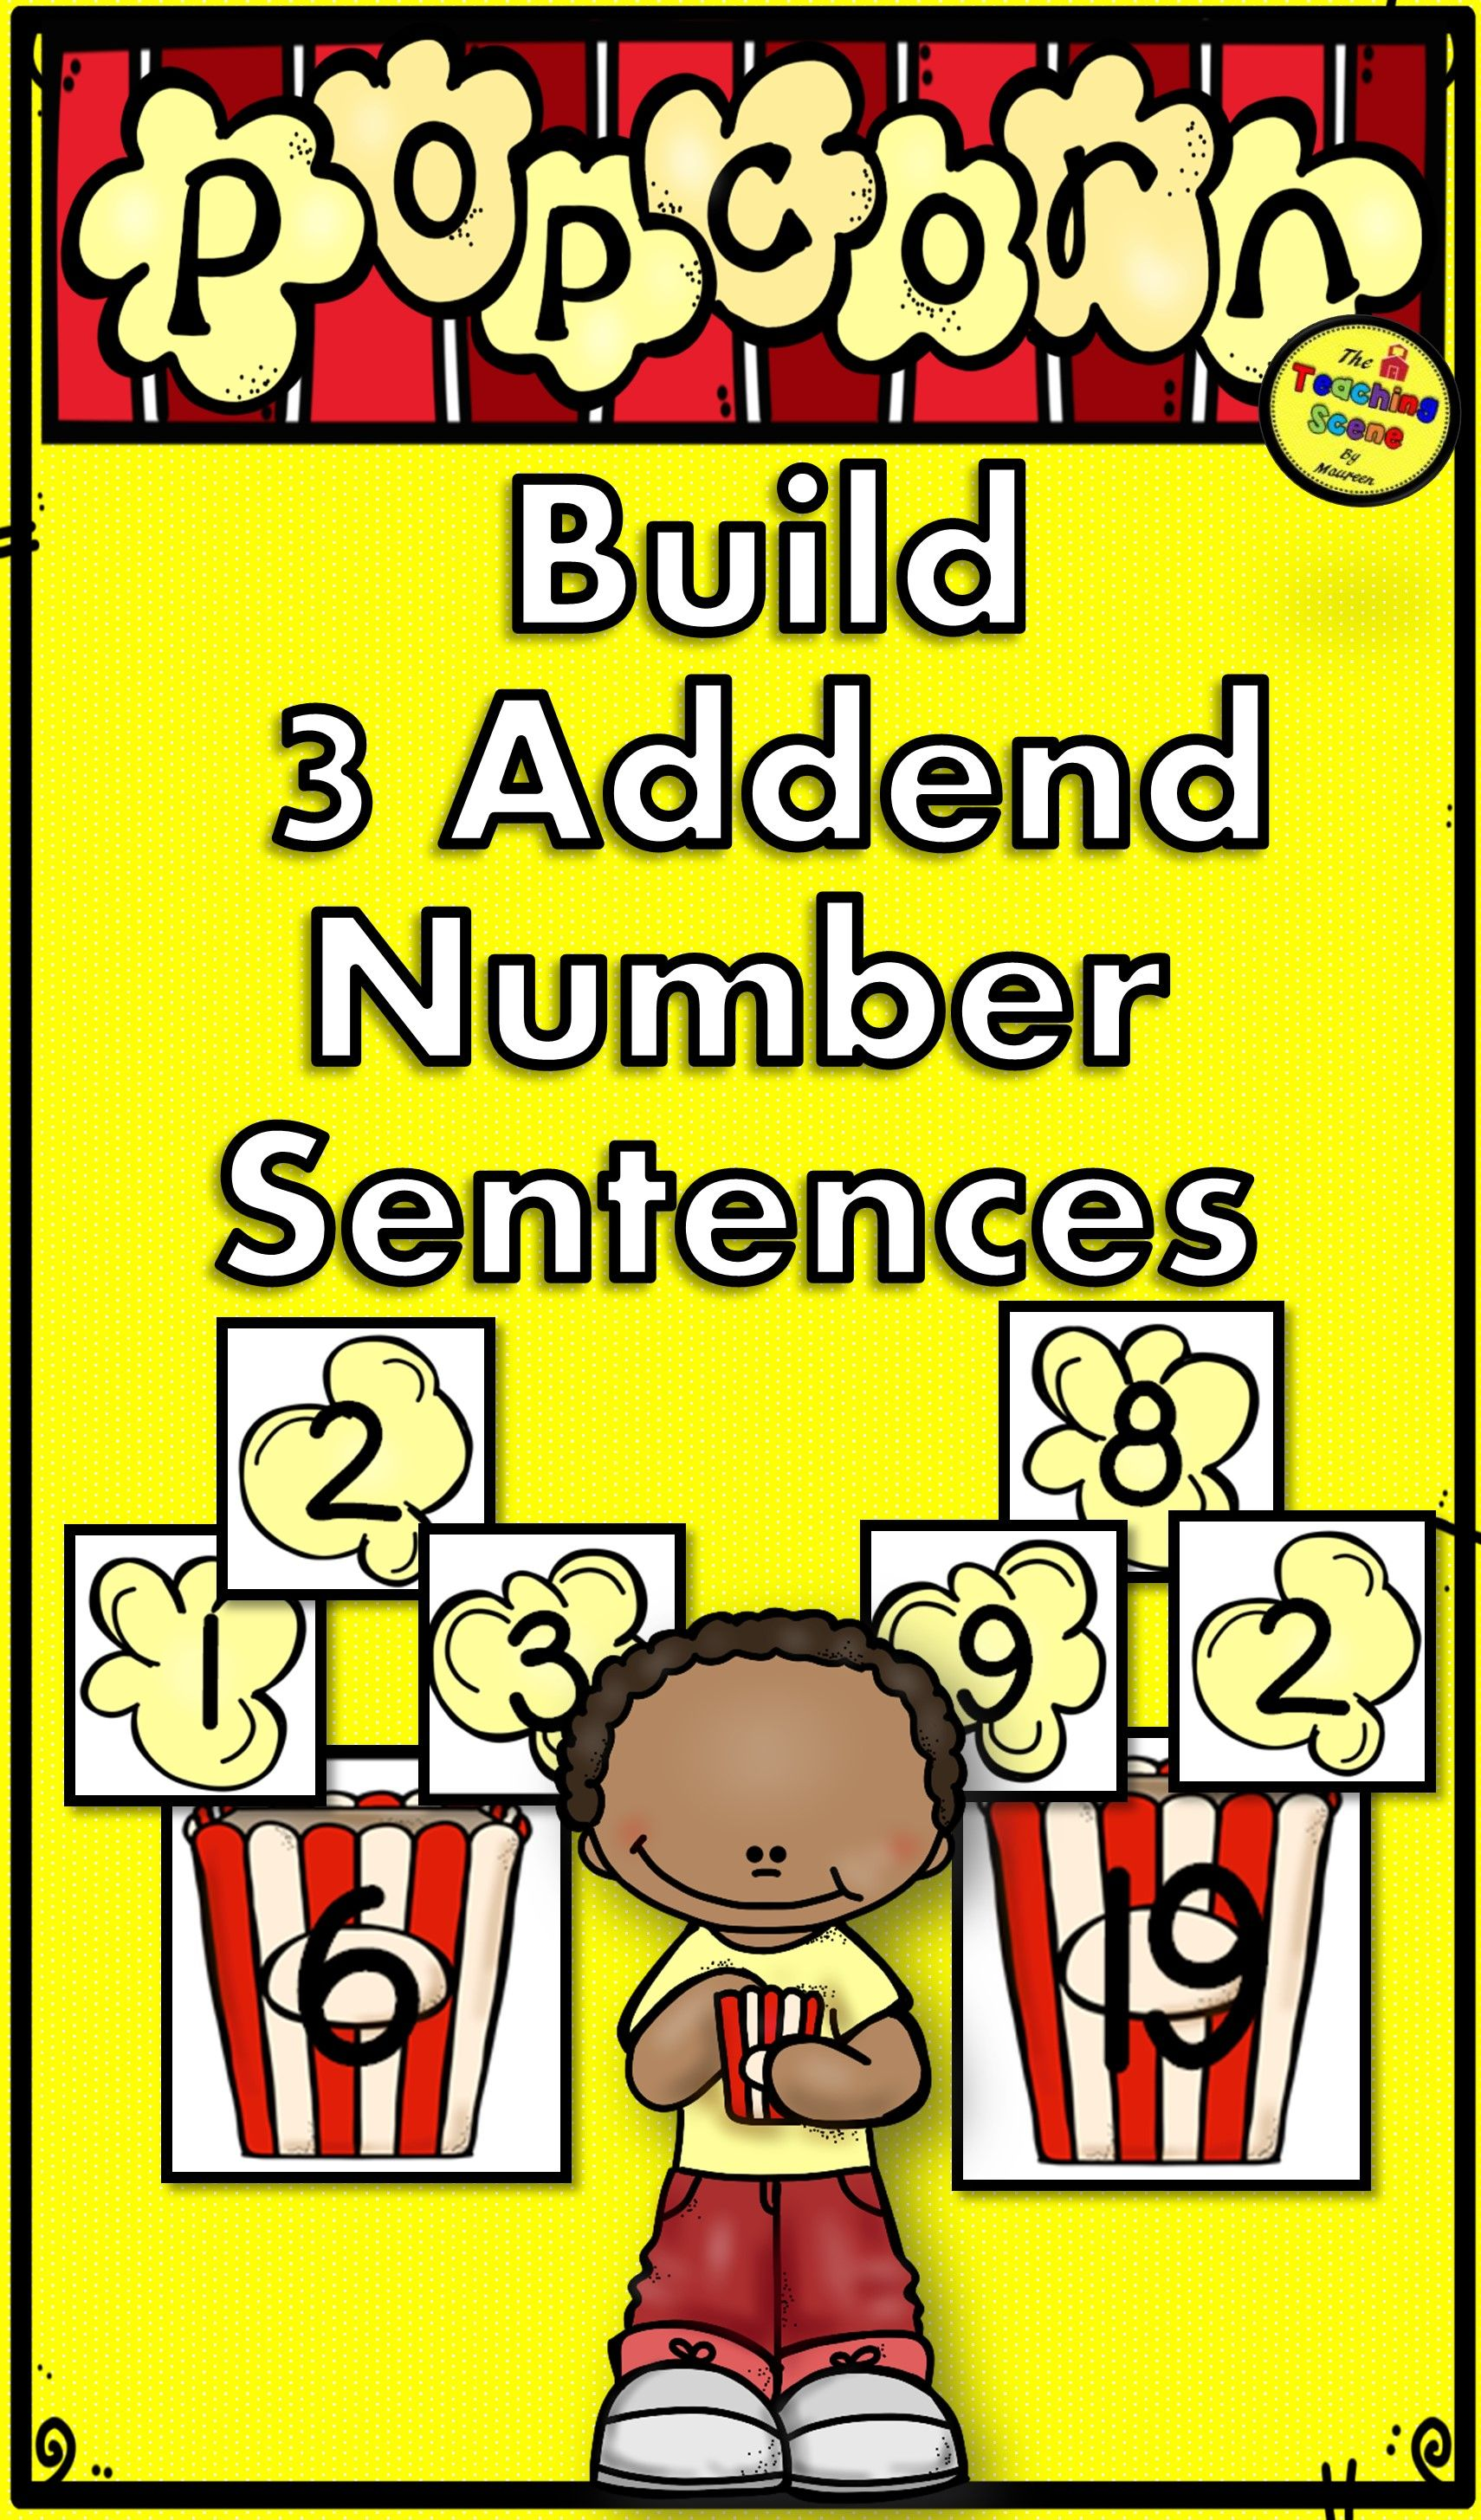 Popcorn Build 3 Addend Addition Amp Subtraction Sentences